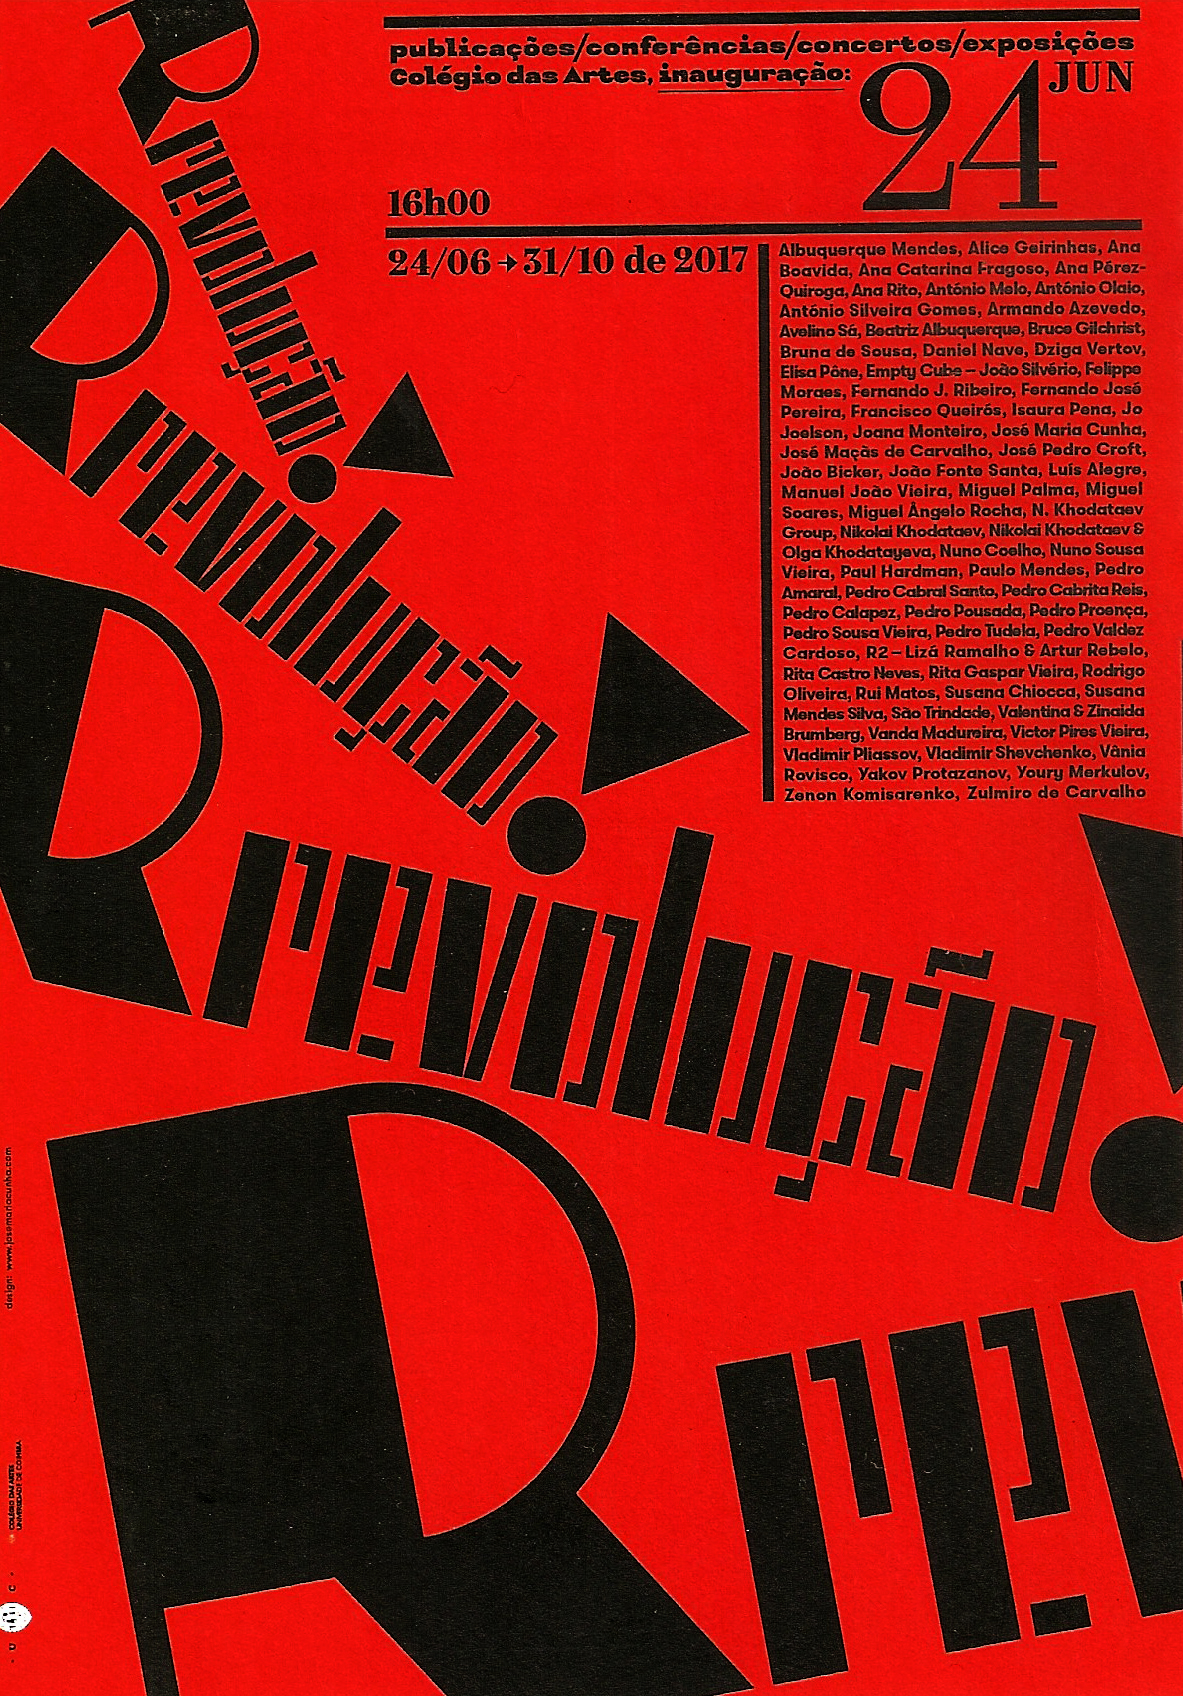 - Rrevolução, by several artistsCommemoration of the 100th anniversary of the October RevolutionJune 24, 2017, 6 p.m - Oct 31, 2017, 6 p.mCoimbra University, College of Arts, ground floor.Catalog design by José Maria Cunha.